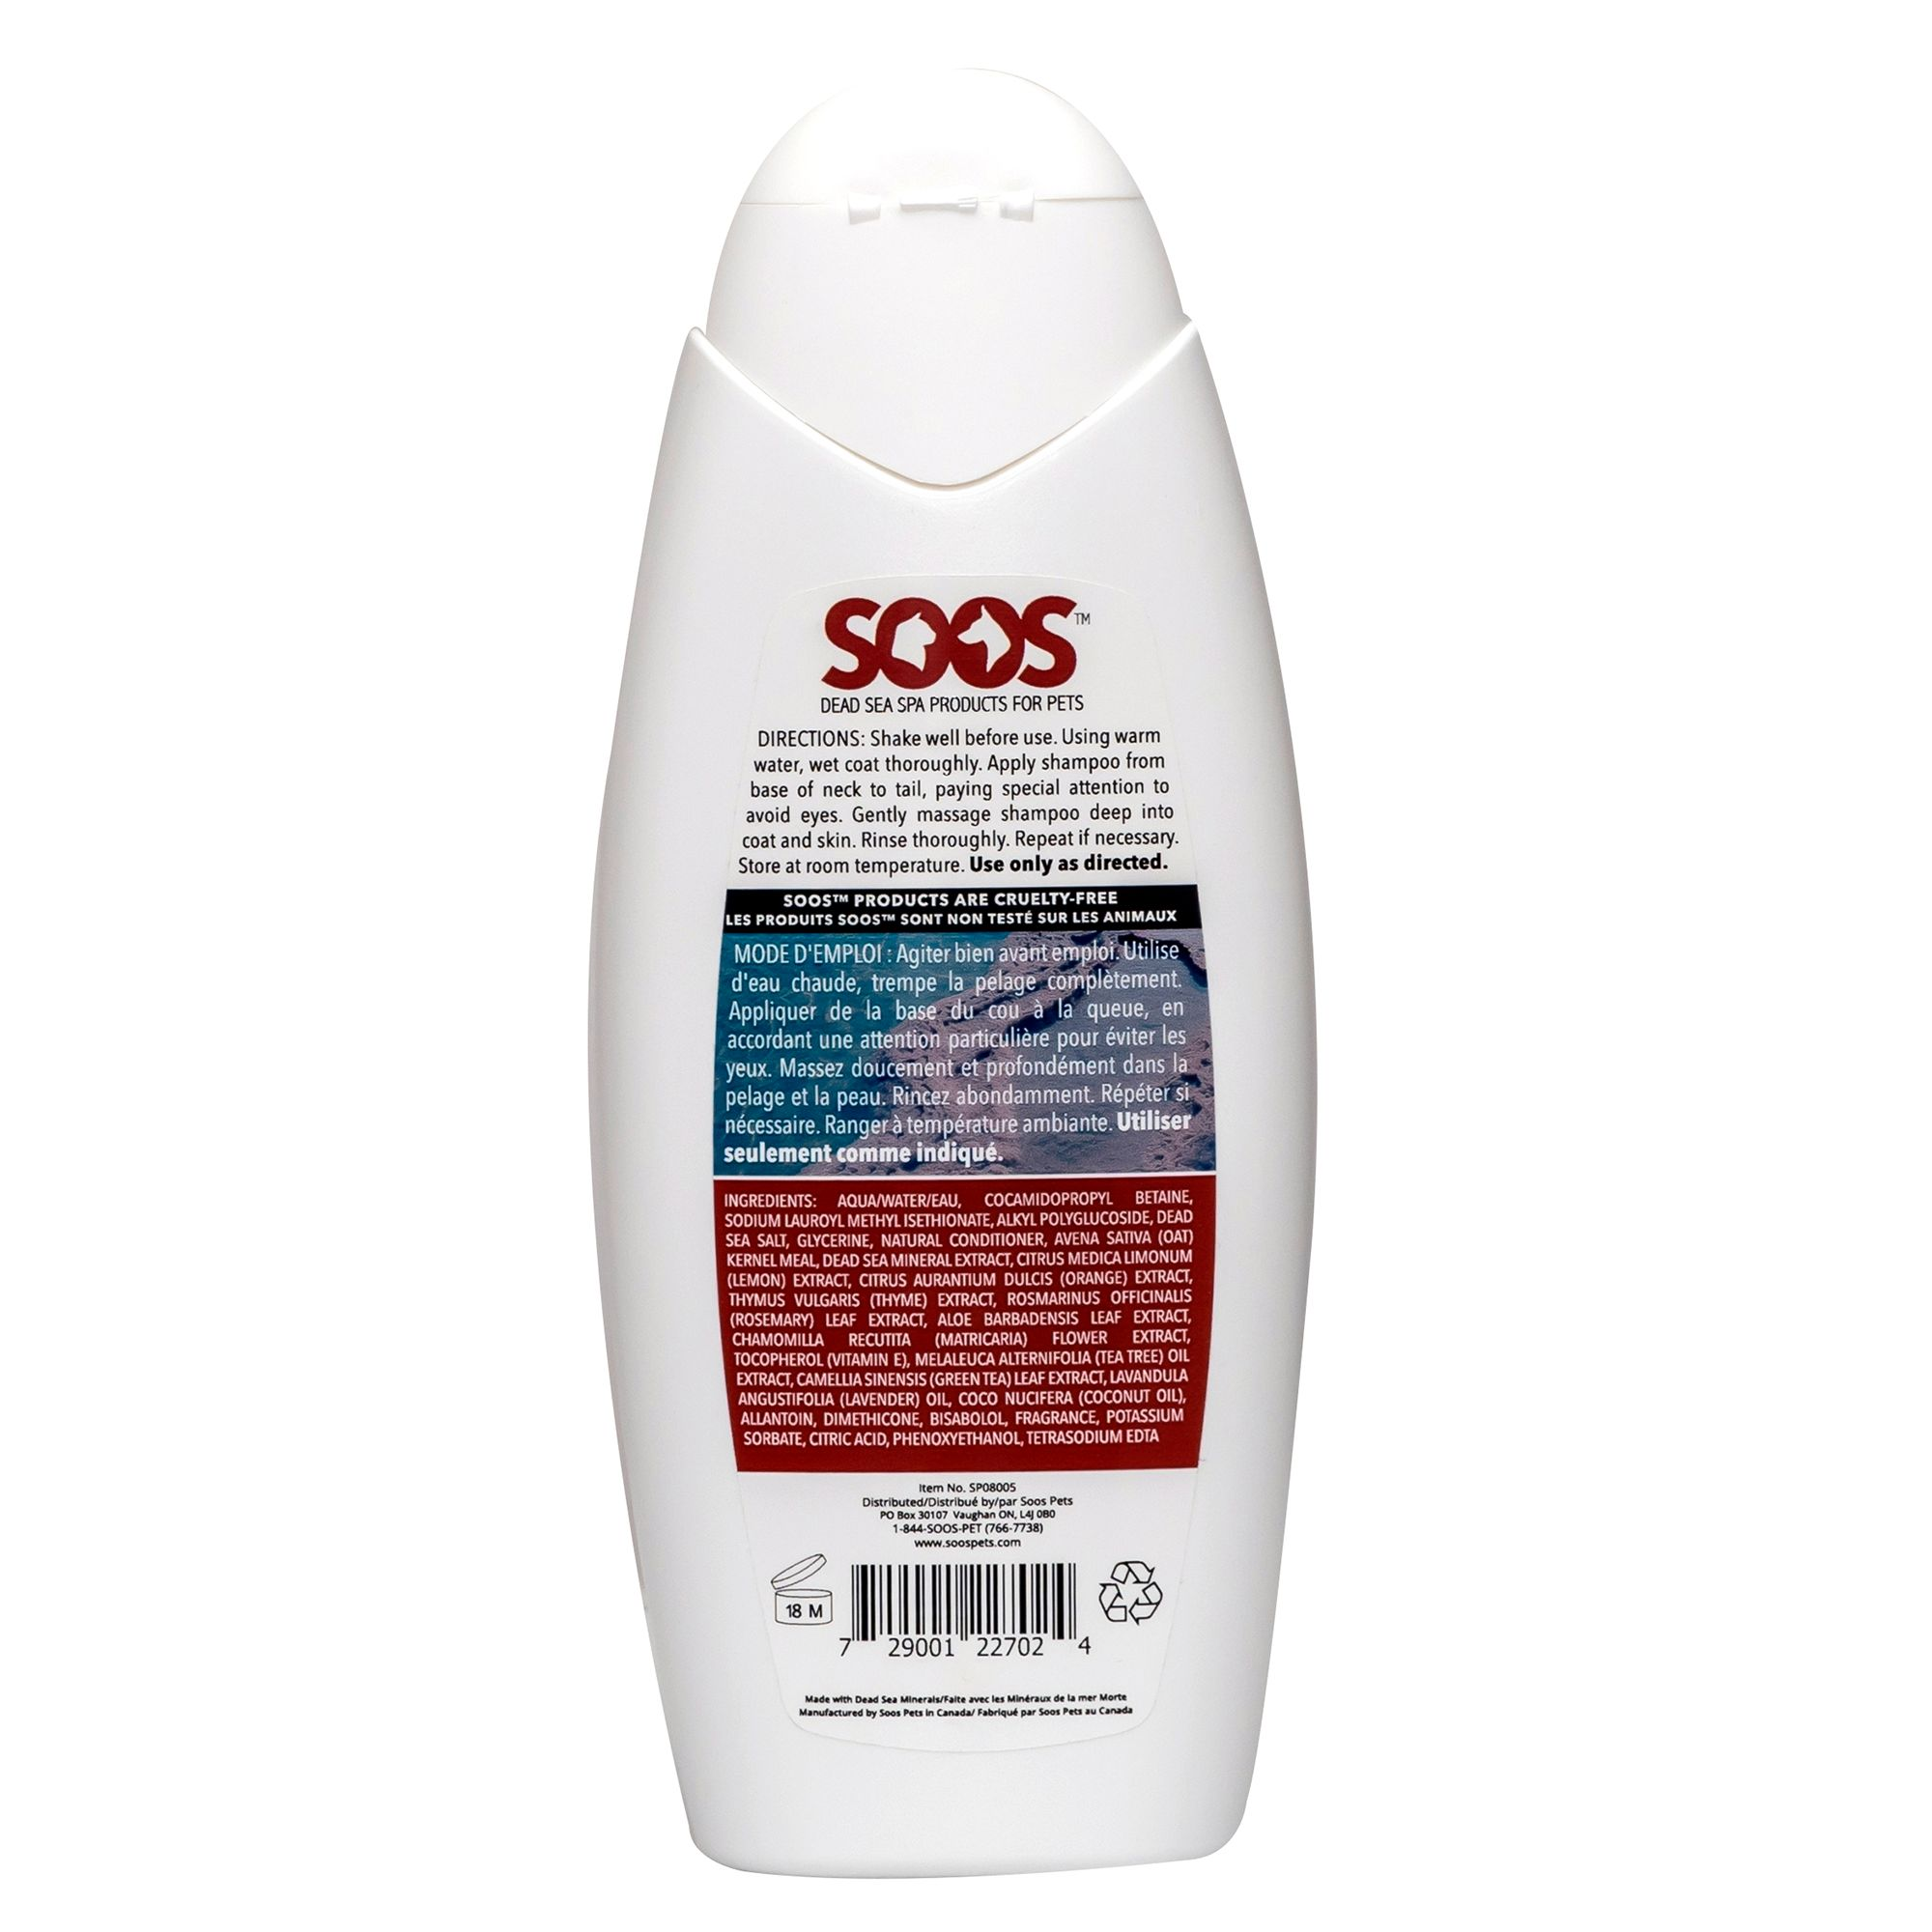 Pets Natural Anti-Itch Shampoo for Dogs